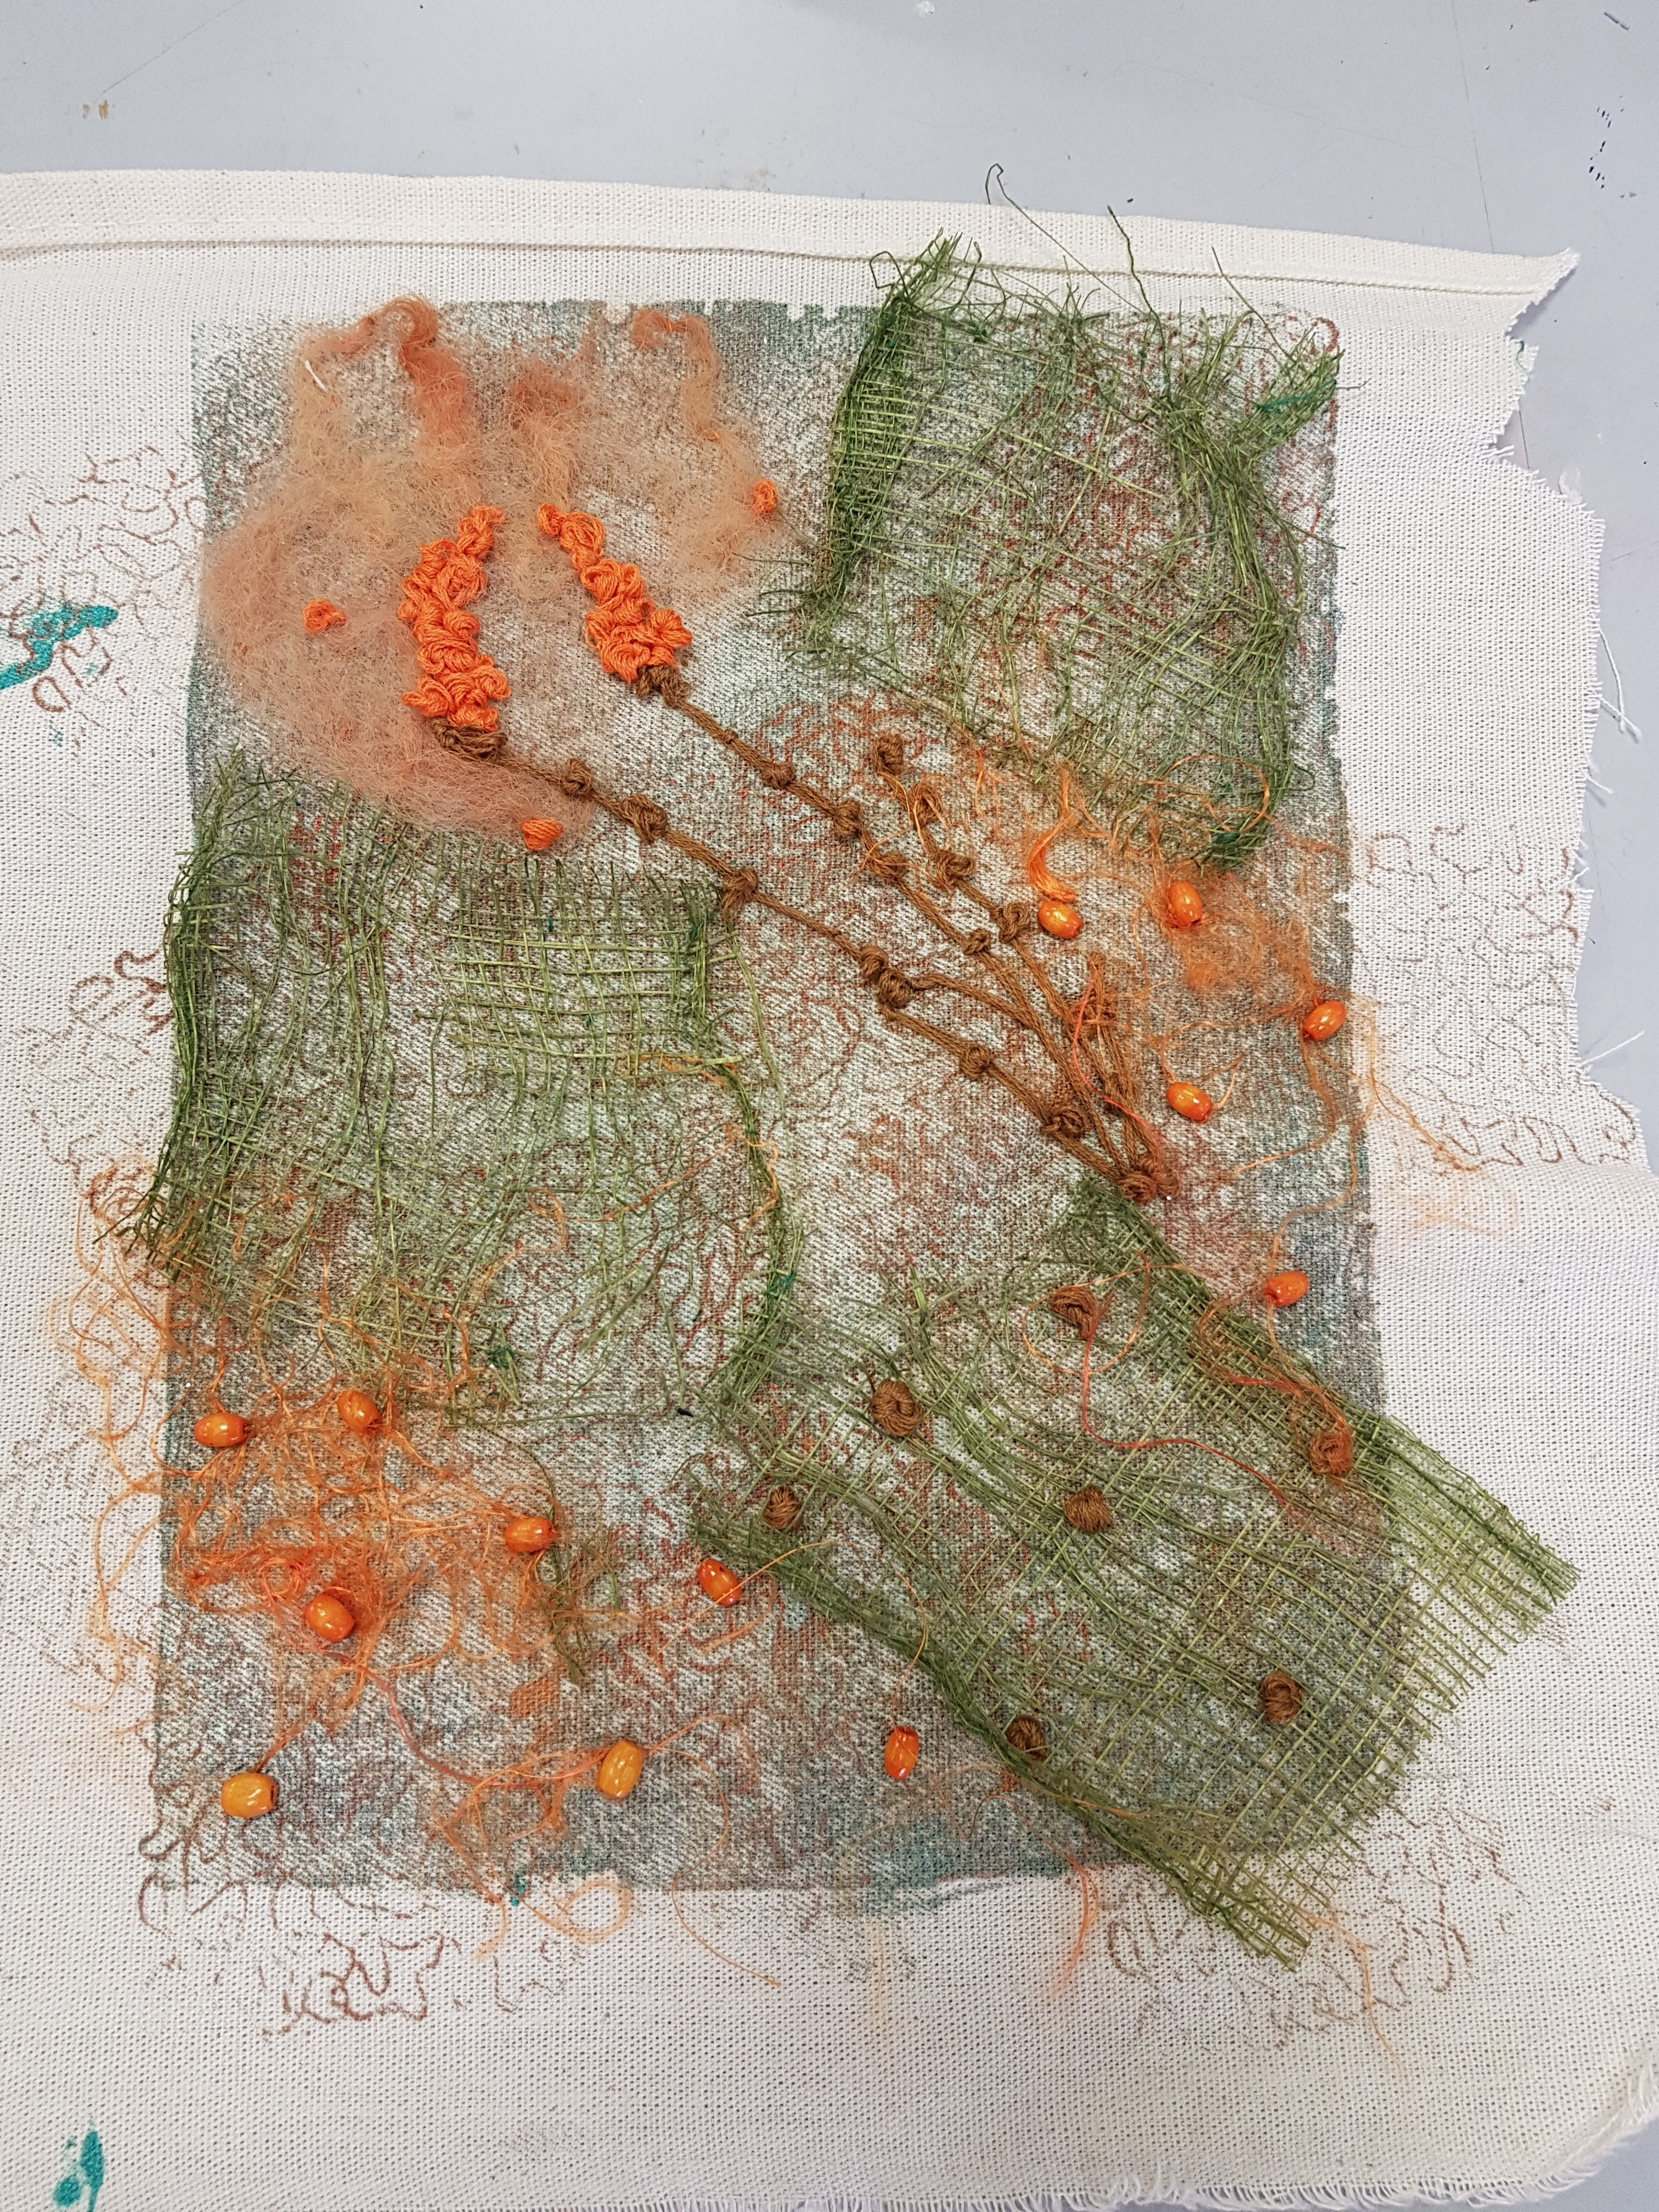 student work from debbie tomkies friday textiles group at altrincham open studios